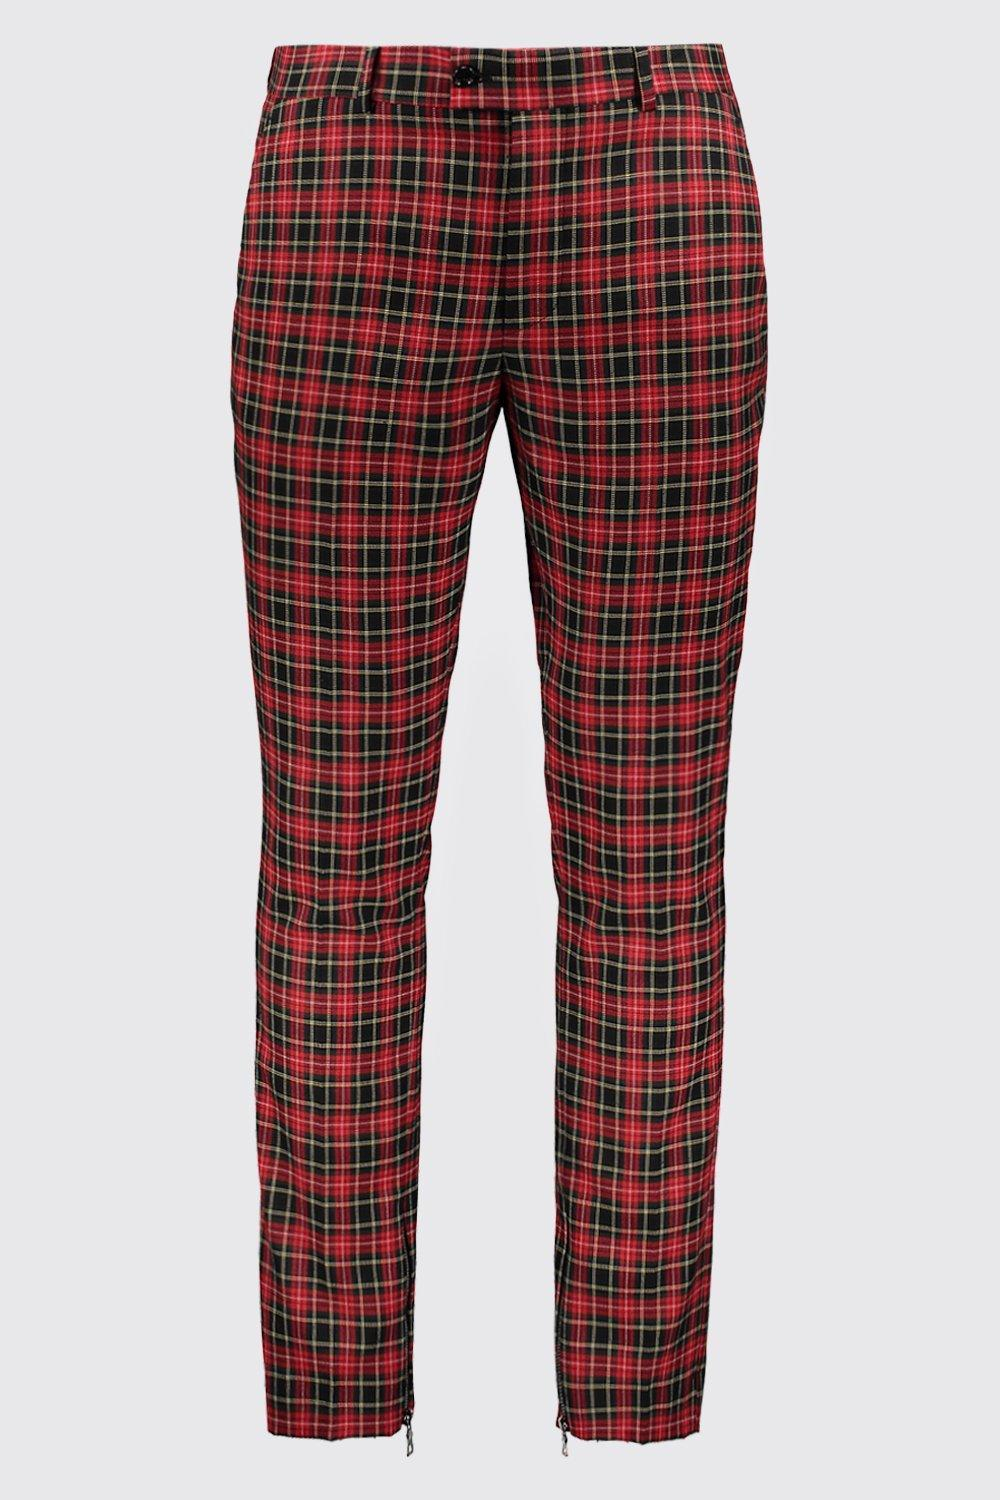 7c07fa911ed6 Boohoo Tartan Smart Trouser With Zip Ankle Detail in Red for Men - Lyst